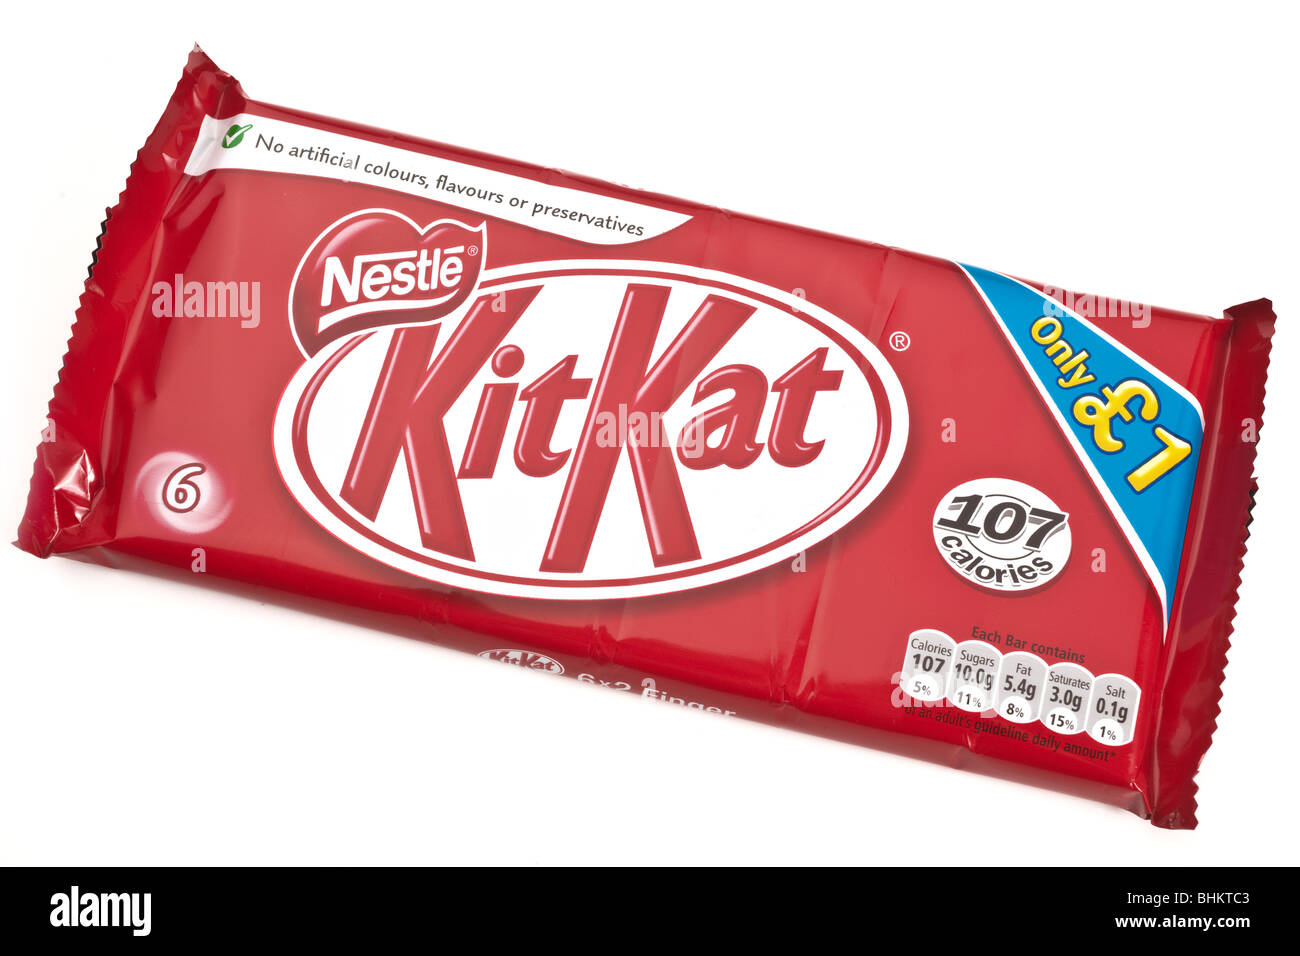 Pack of six two finger Kit Kat biscuits - Stock Image